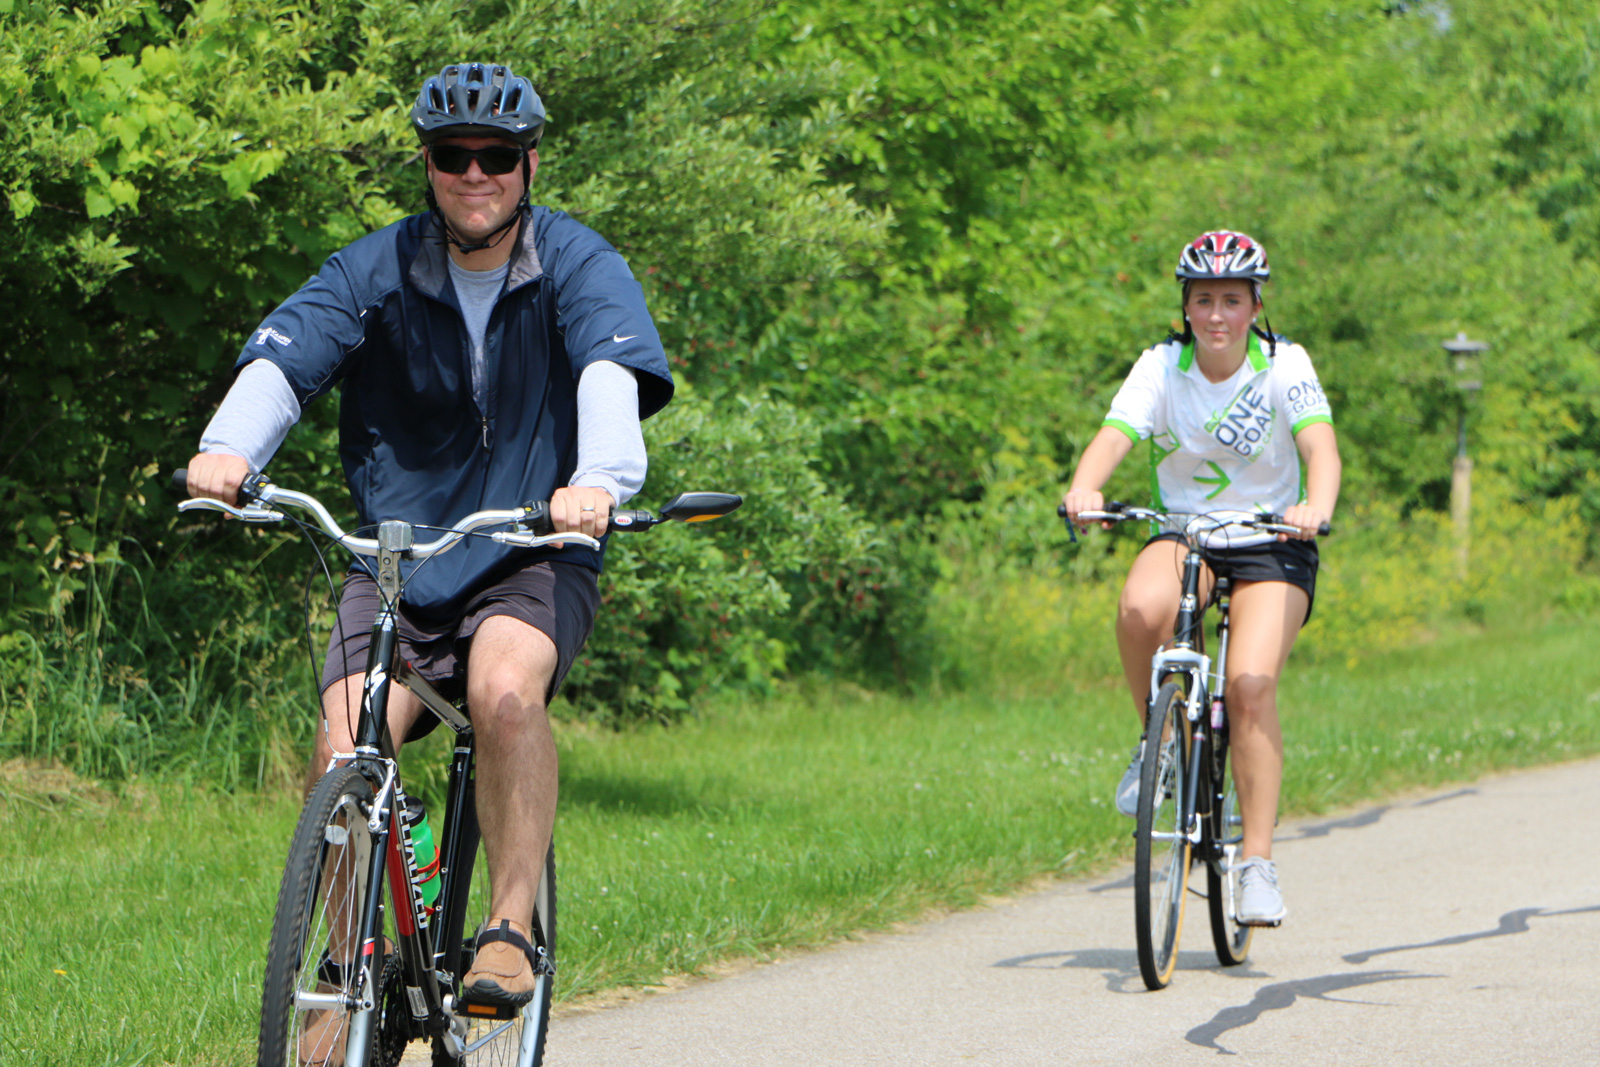 Bikers on the 0.75-mile MultiUse Trail at Homestead Metro Park.